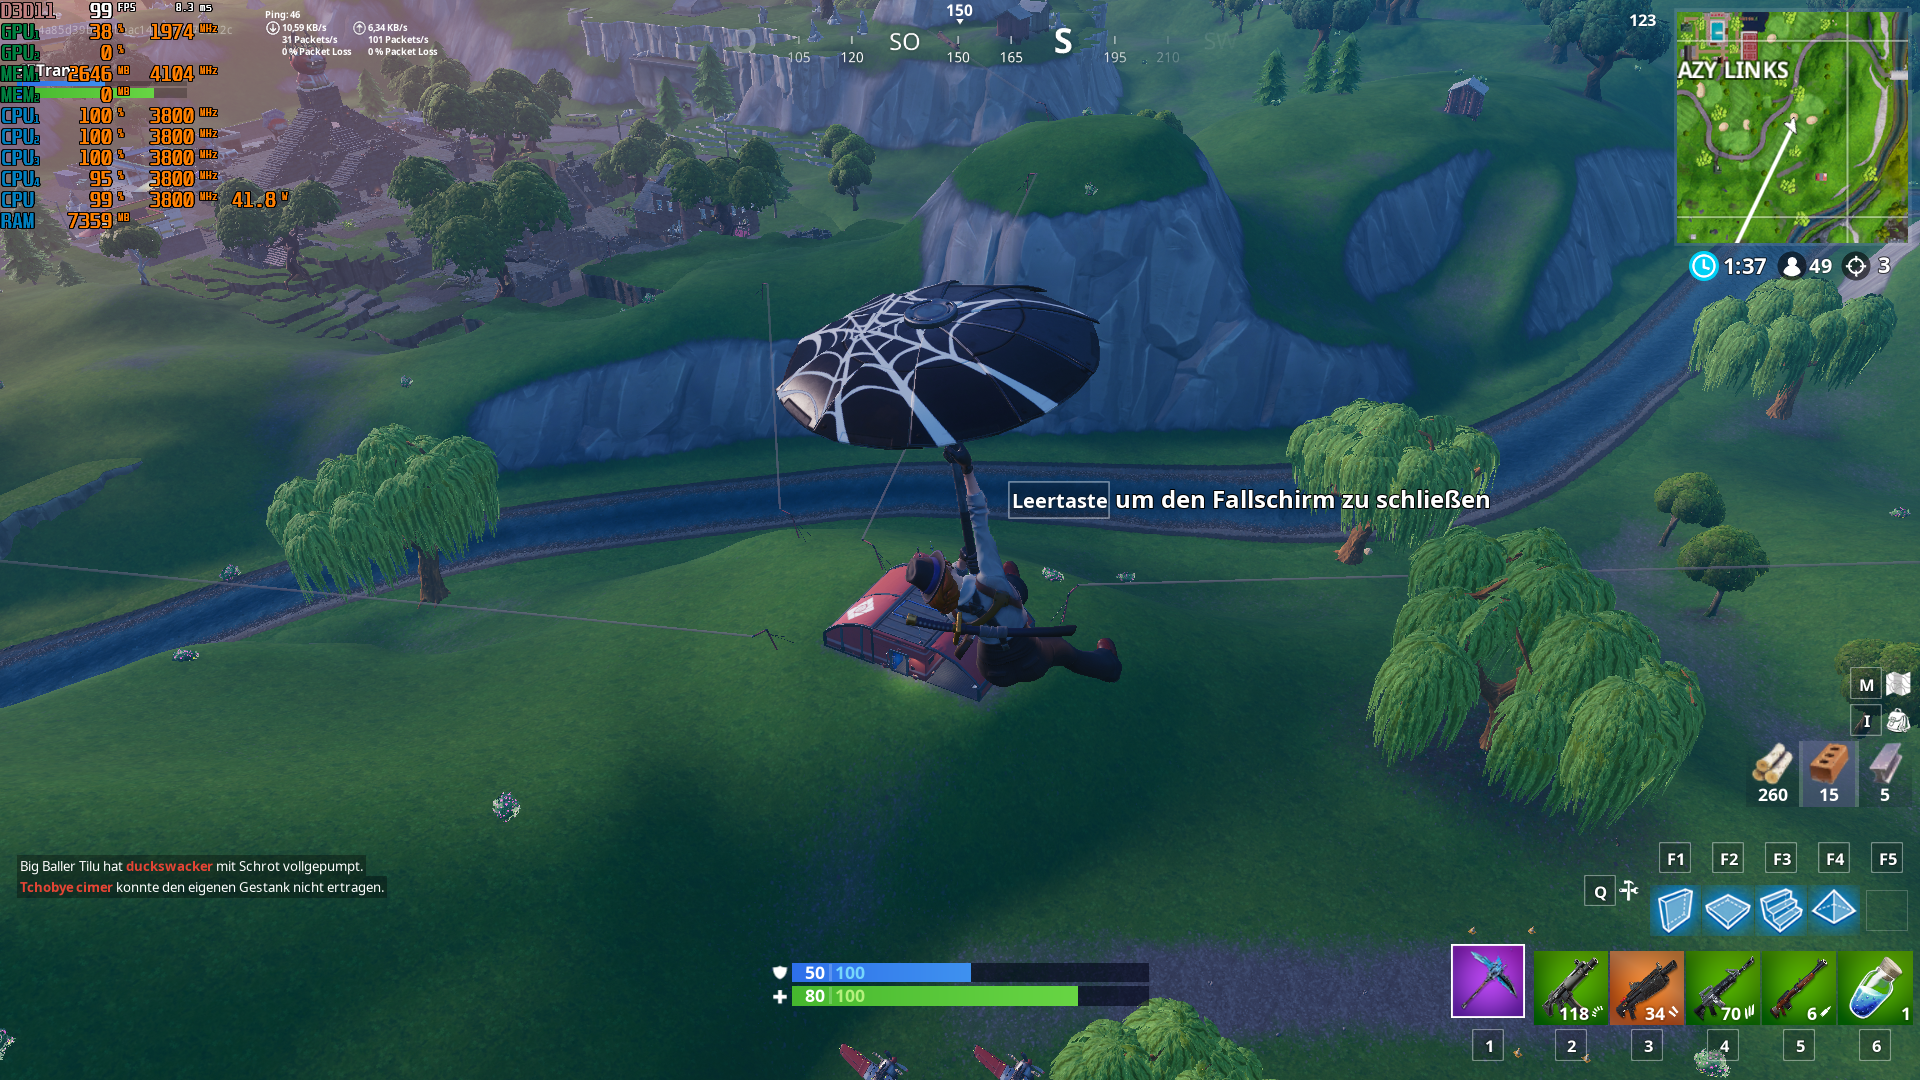 FortniteClient-Win64-Shipping_2018_12_28_00_48_09_203.png